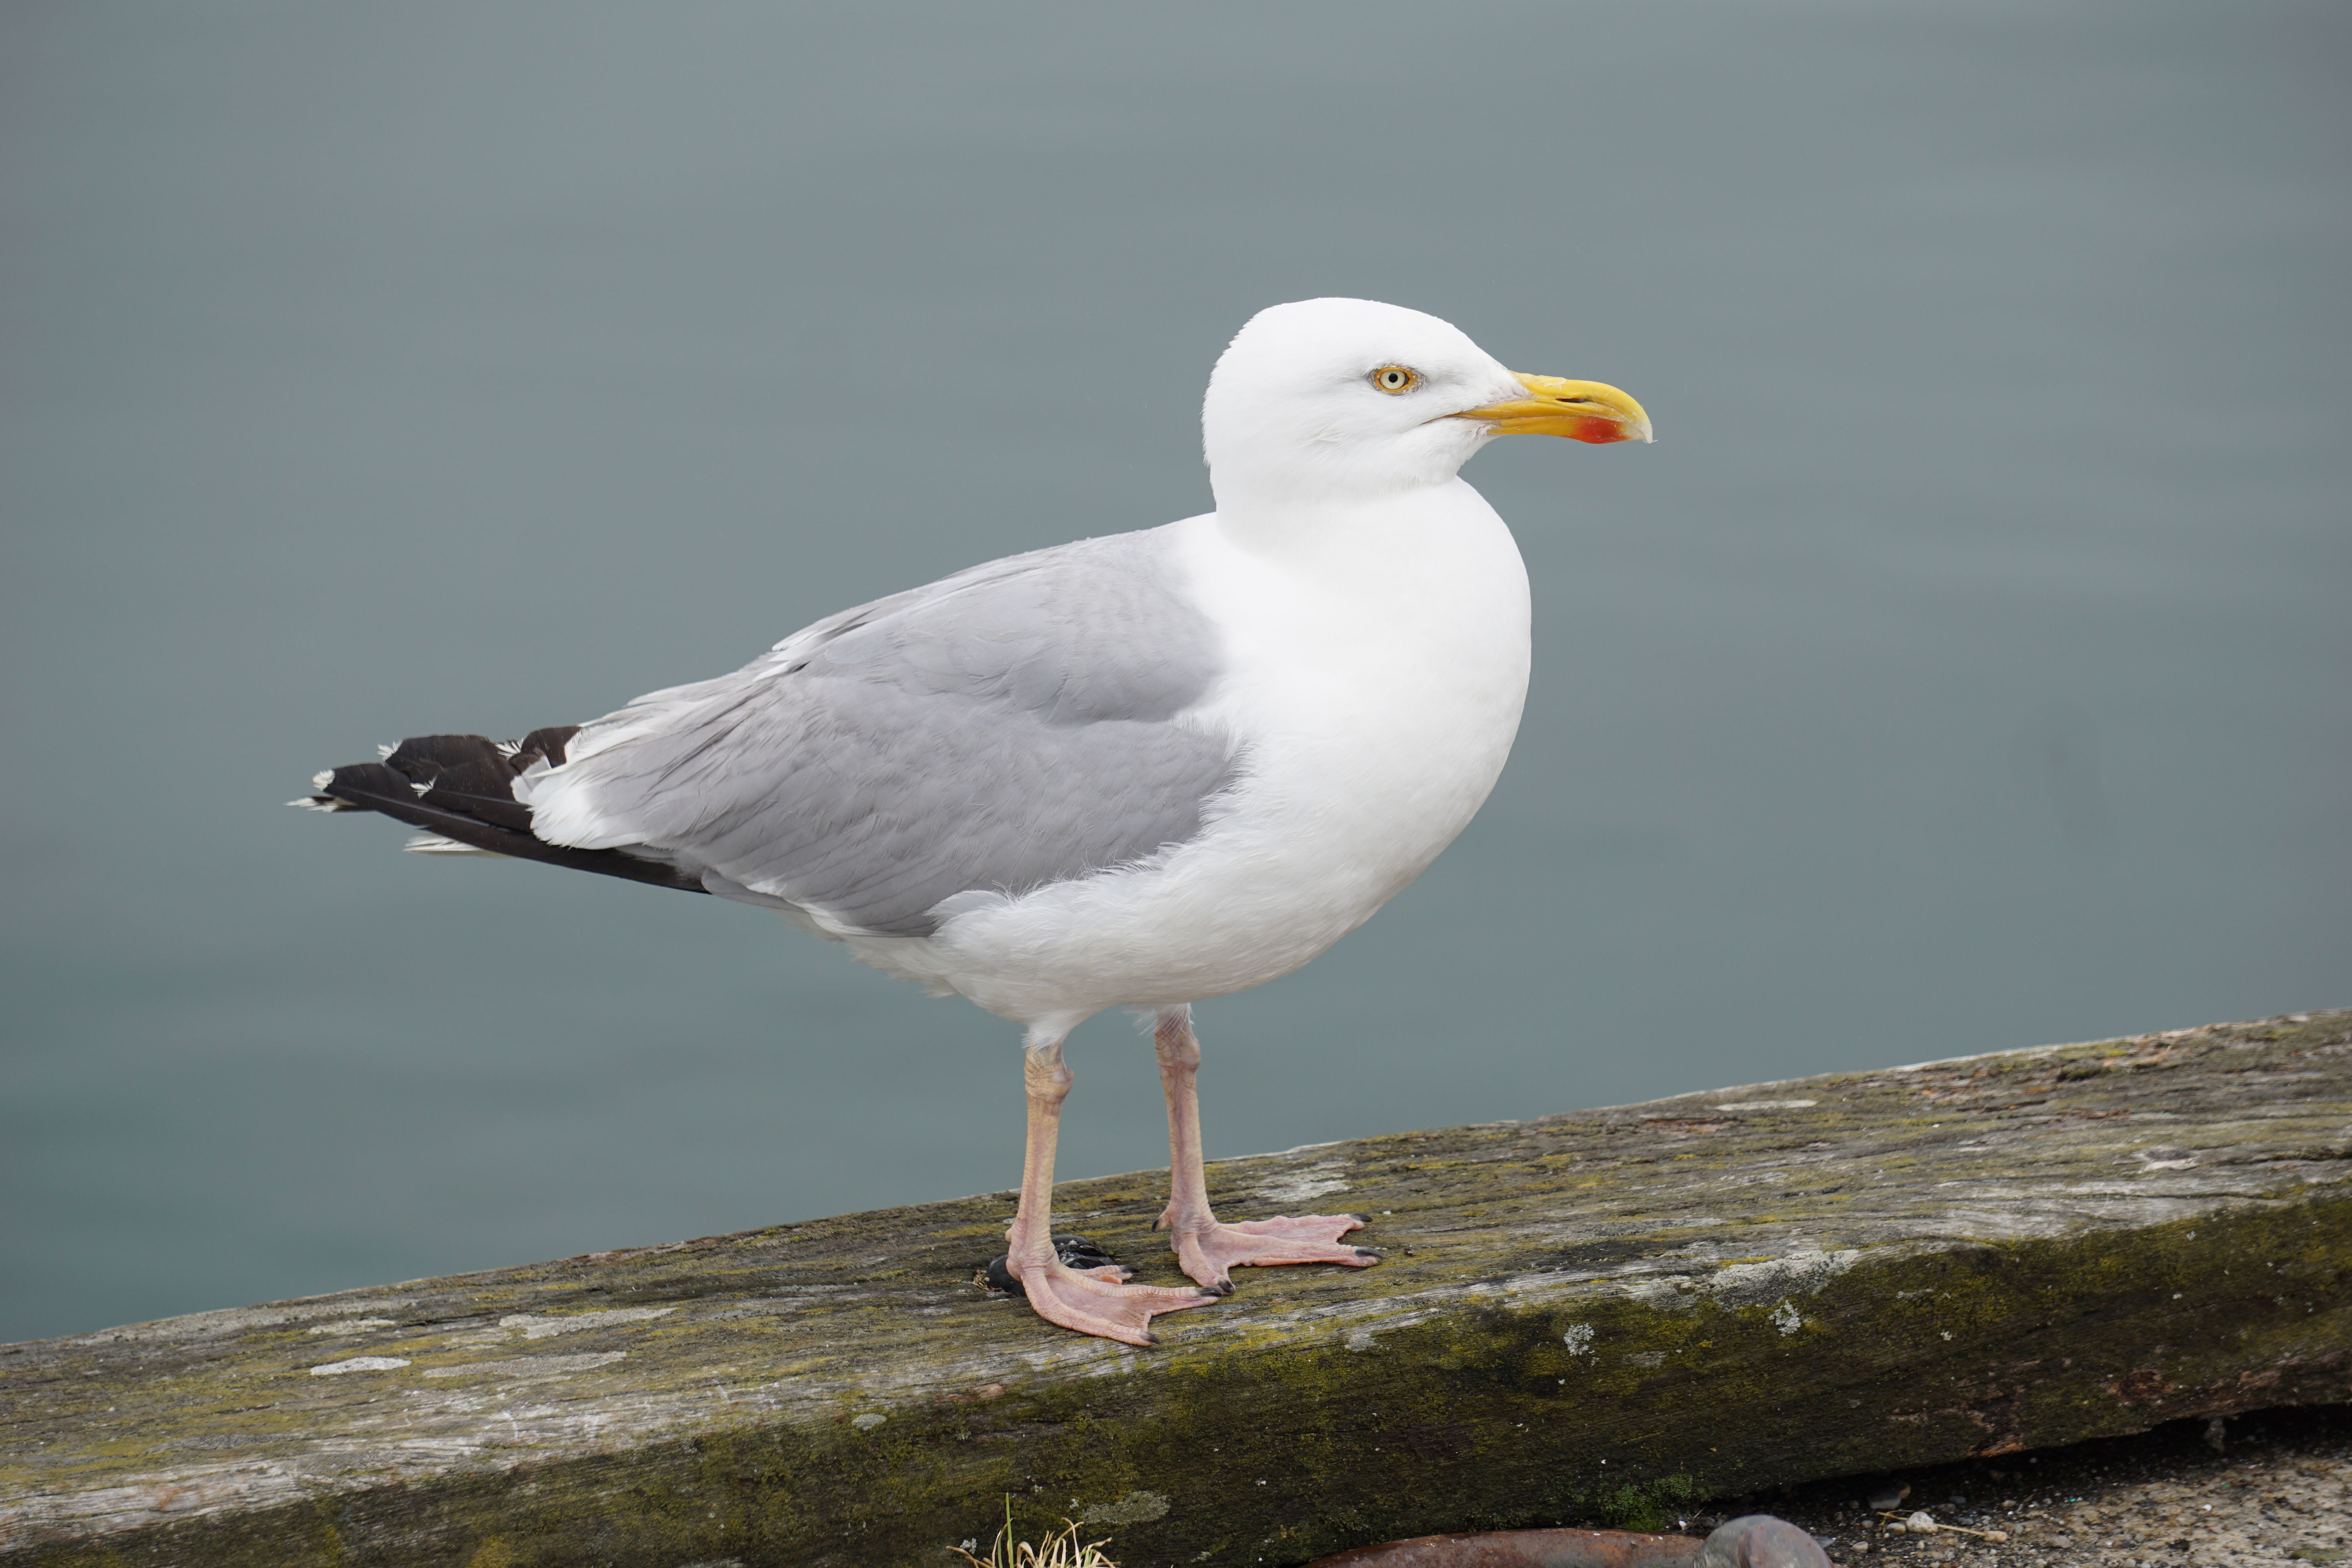 Man Detained After Biting Seagull Who Tried Stealing His McDonald's